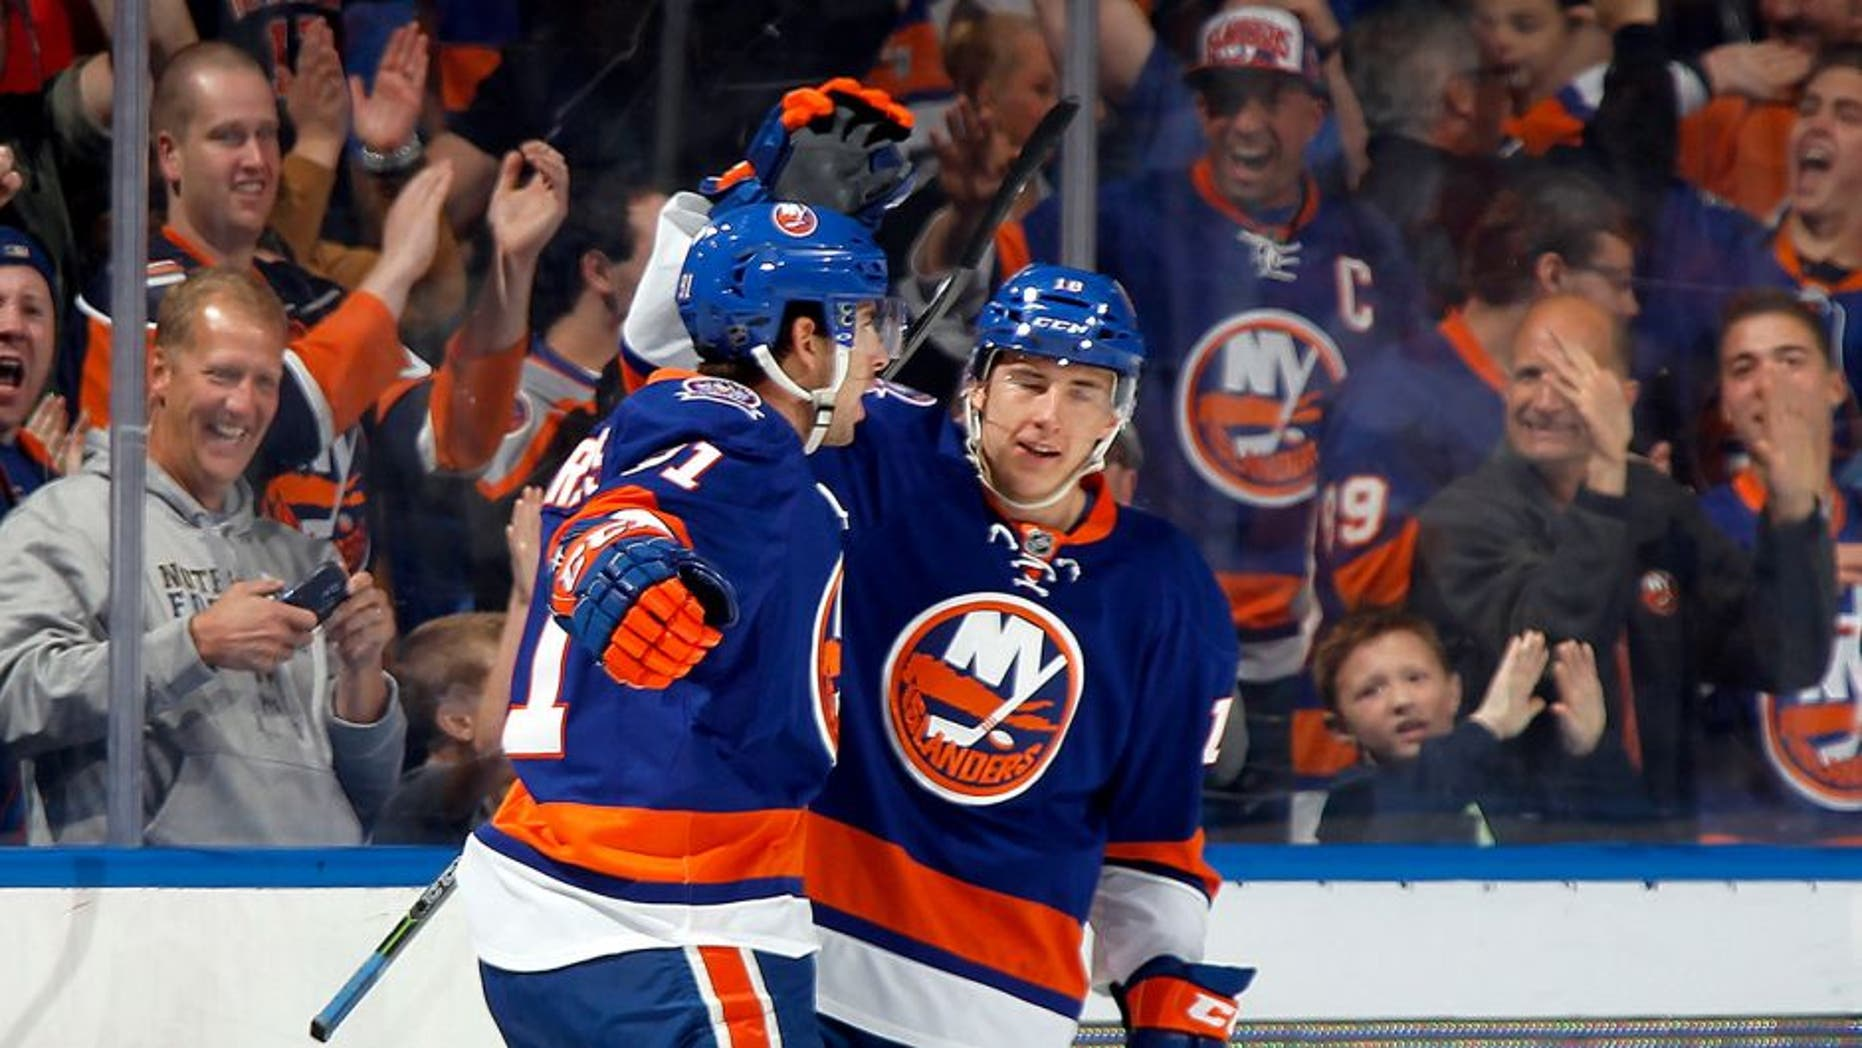 UNIONDALE, NY - OCTOBER 11: John Tavares #91 (L) and Ryan Strome #18 of the New York Islanders celebrate Tavares' first period goal against the Carolina Hurricanes at the Nassau Veterans Memorial Coliseum on October 11, 2014 in Uniondale, New York. (Photo by Bruce Bennett/Getty Images)